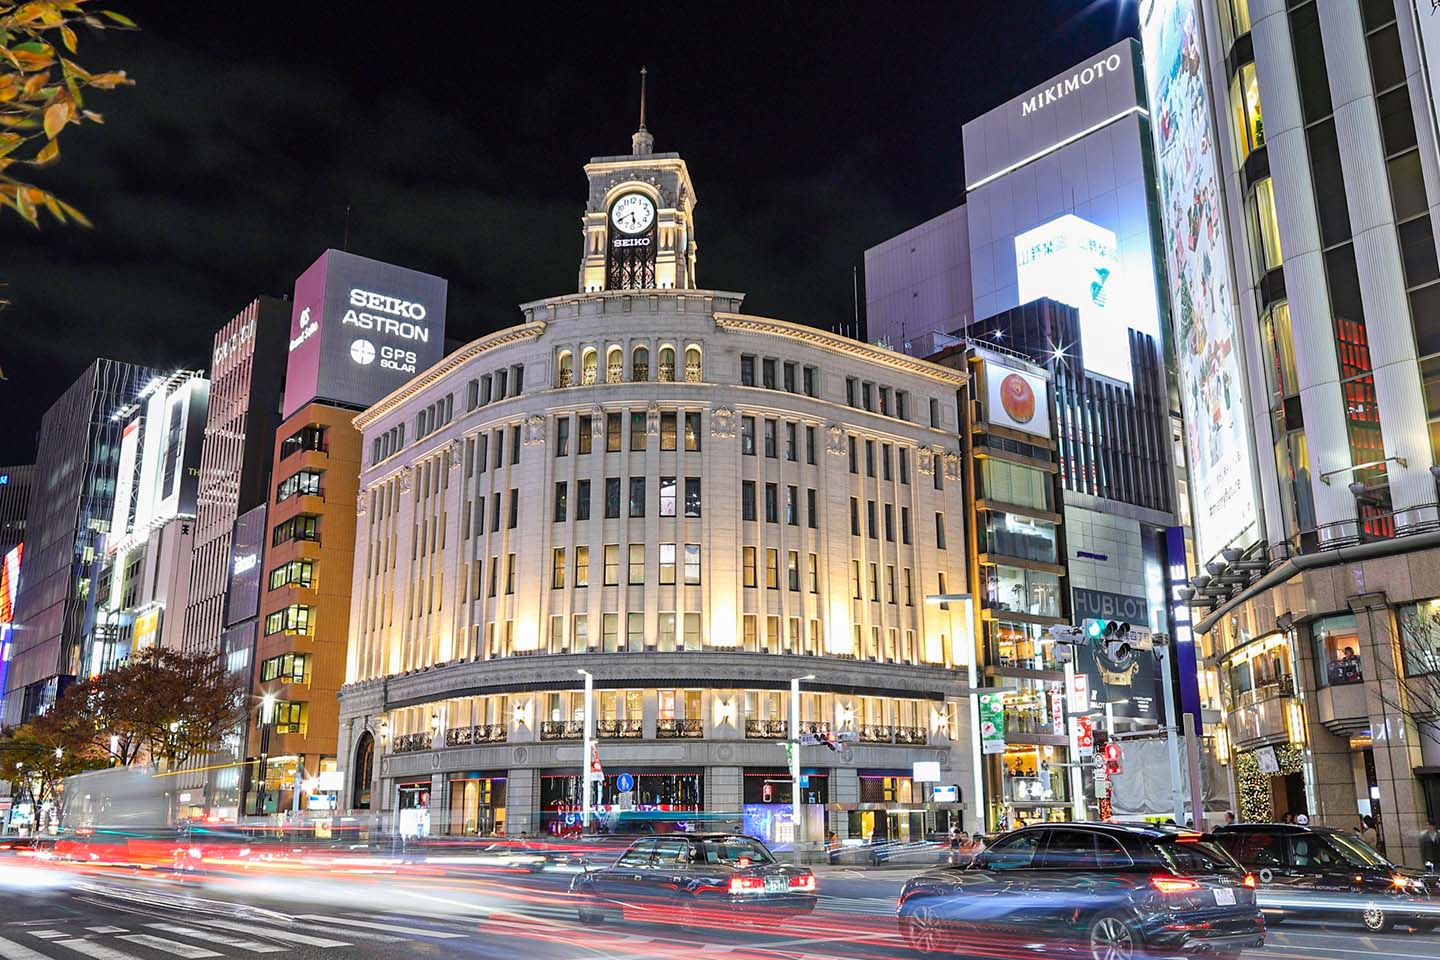 35 Best Things to Do in Ginza